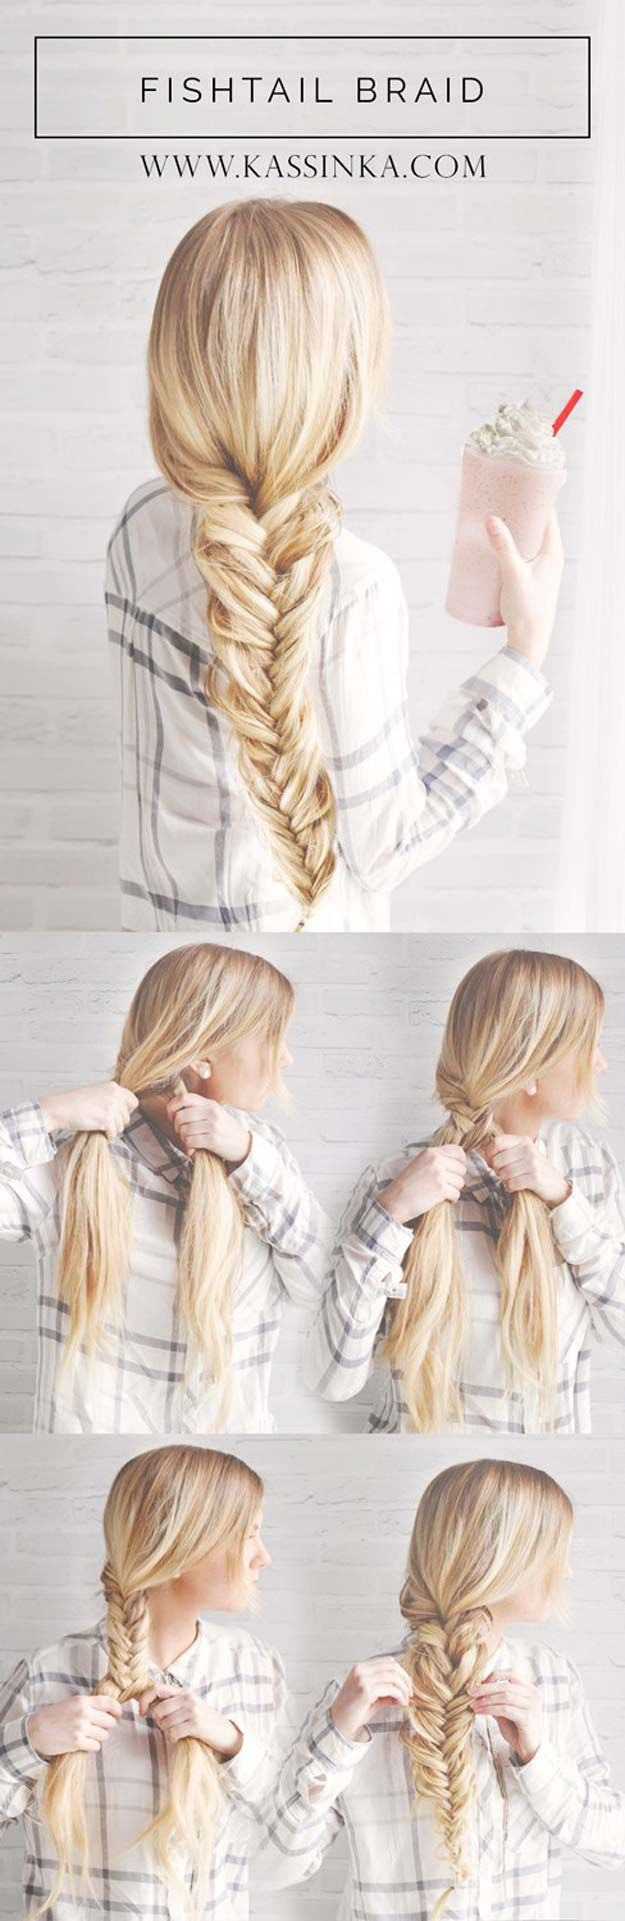 Best 25+ Casual braided hairstyles ideas on Pinterest ...